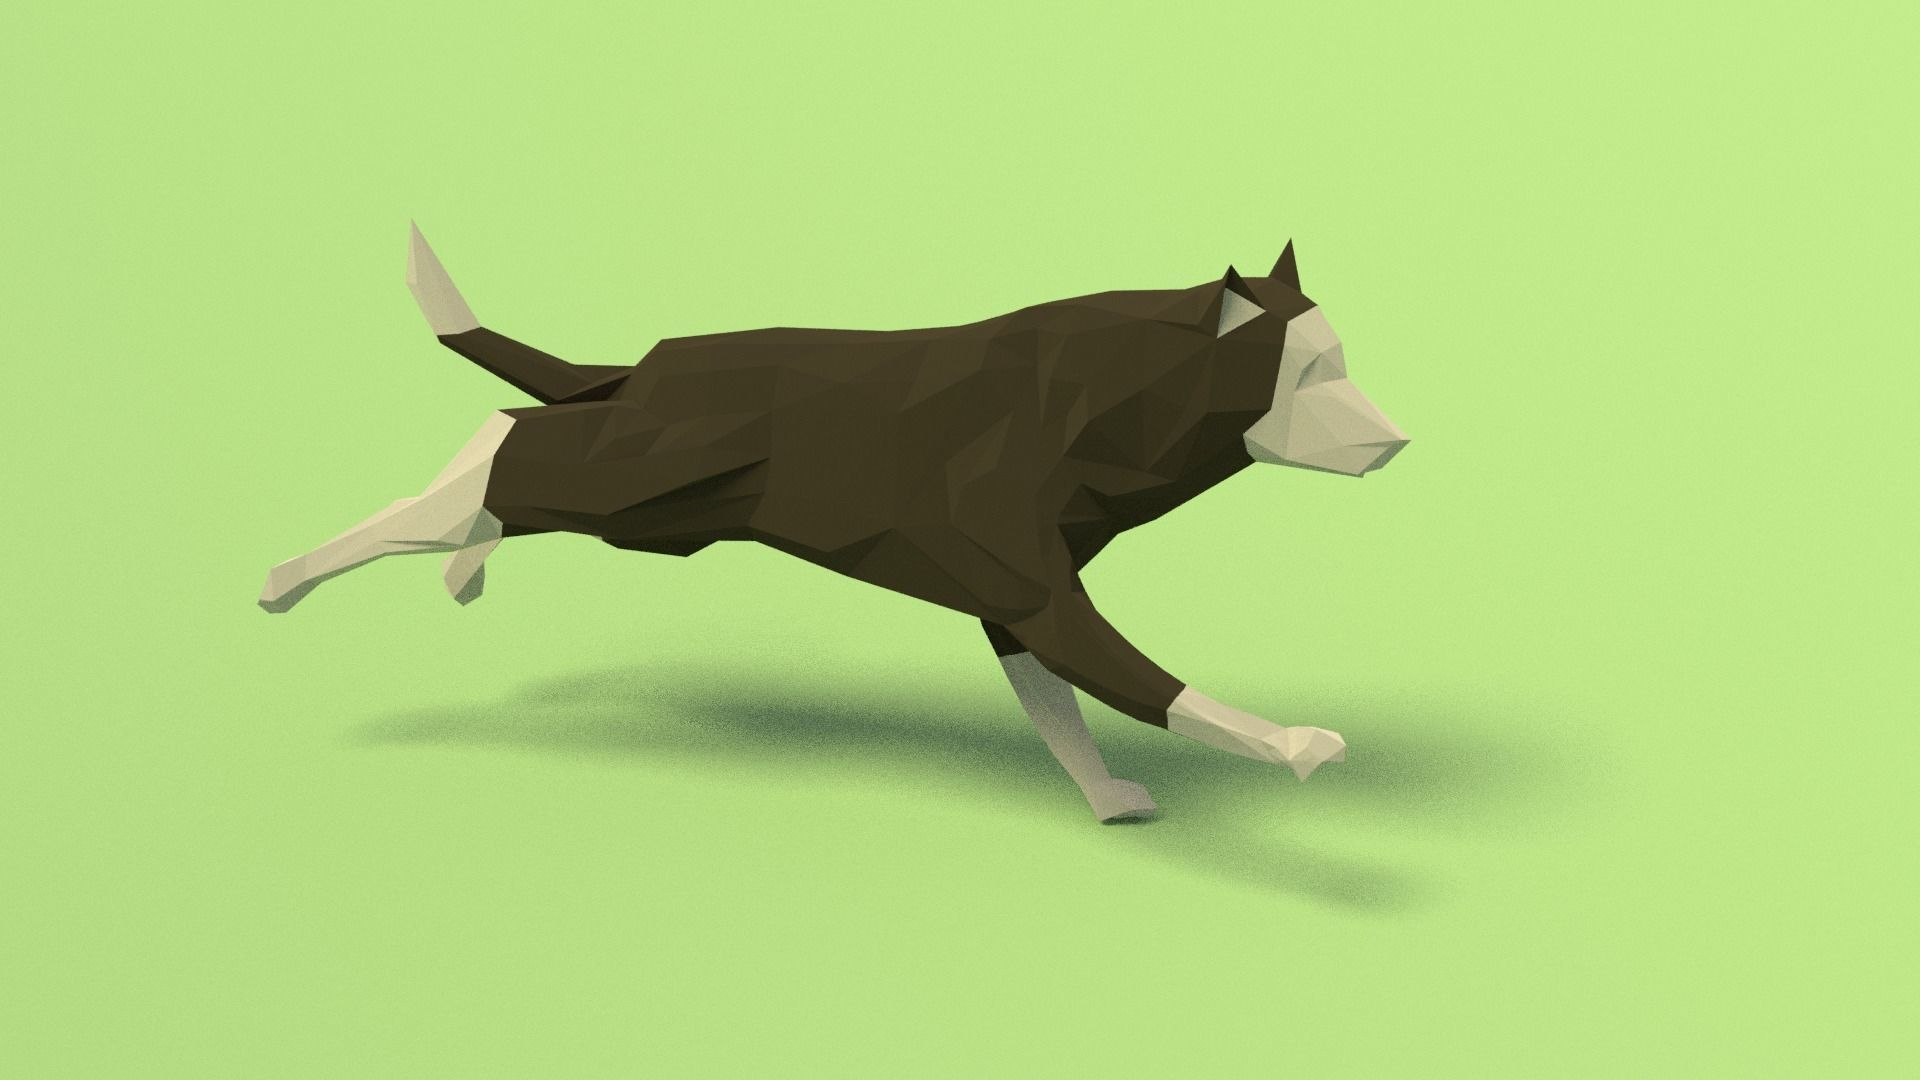 Rigged Low Poly Dog